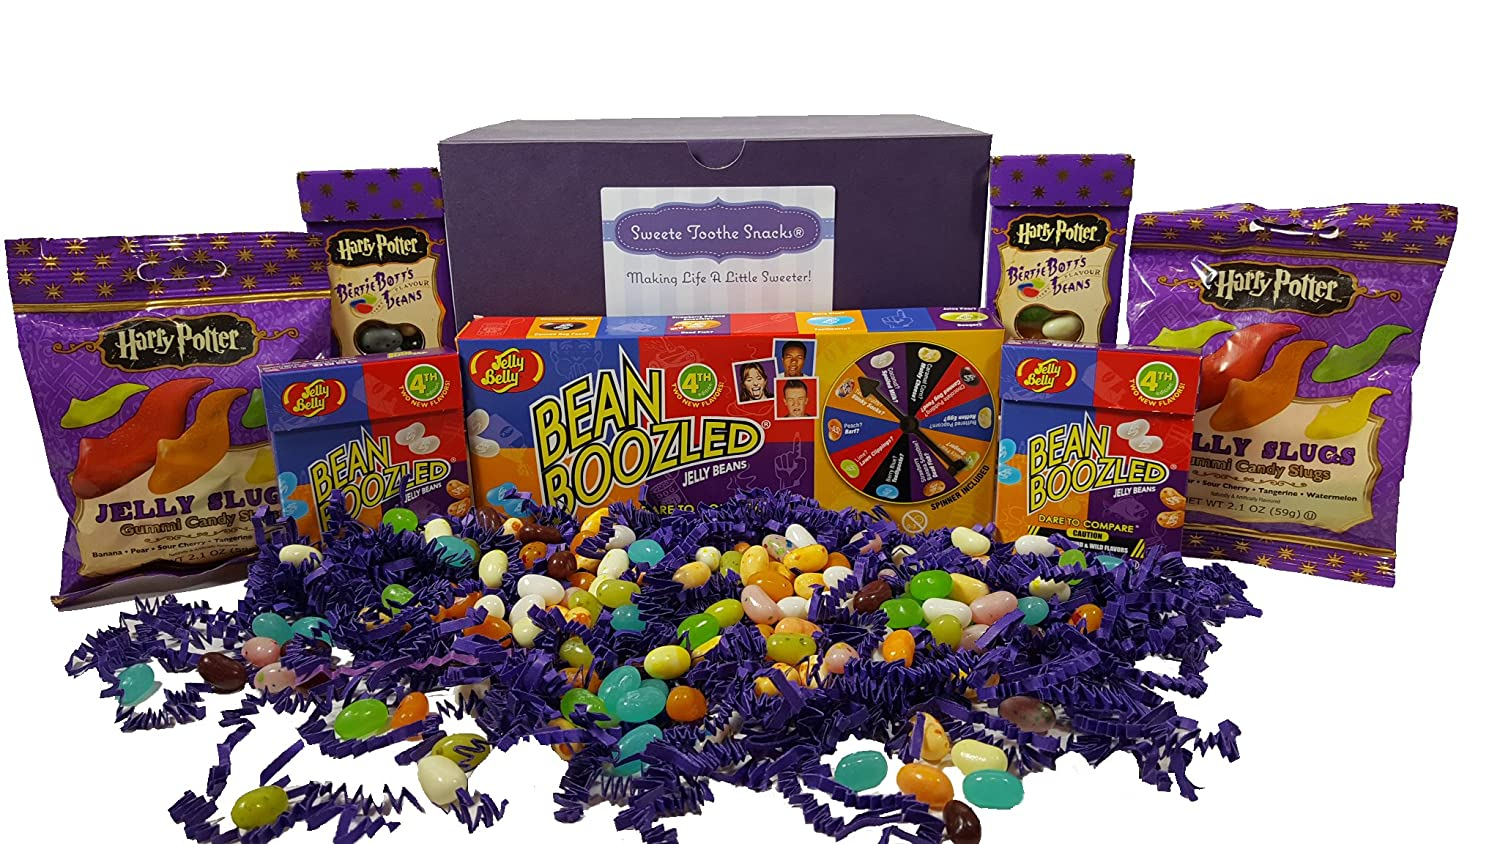 Bean Boozled Spinner Game Harry Potter Chocolate Frog Jelly Refill Dispenser Amazoncom Beanboozled Candy Gift Box With New 4th Edition Grocery Gourmet Food